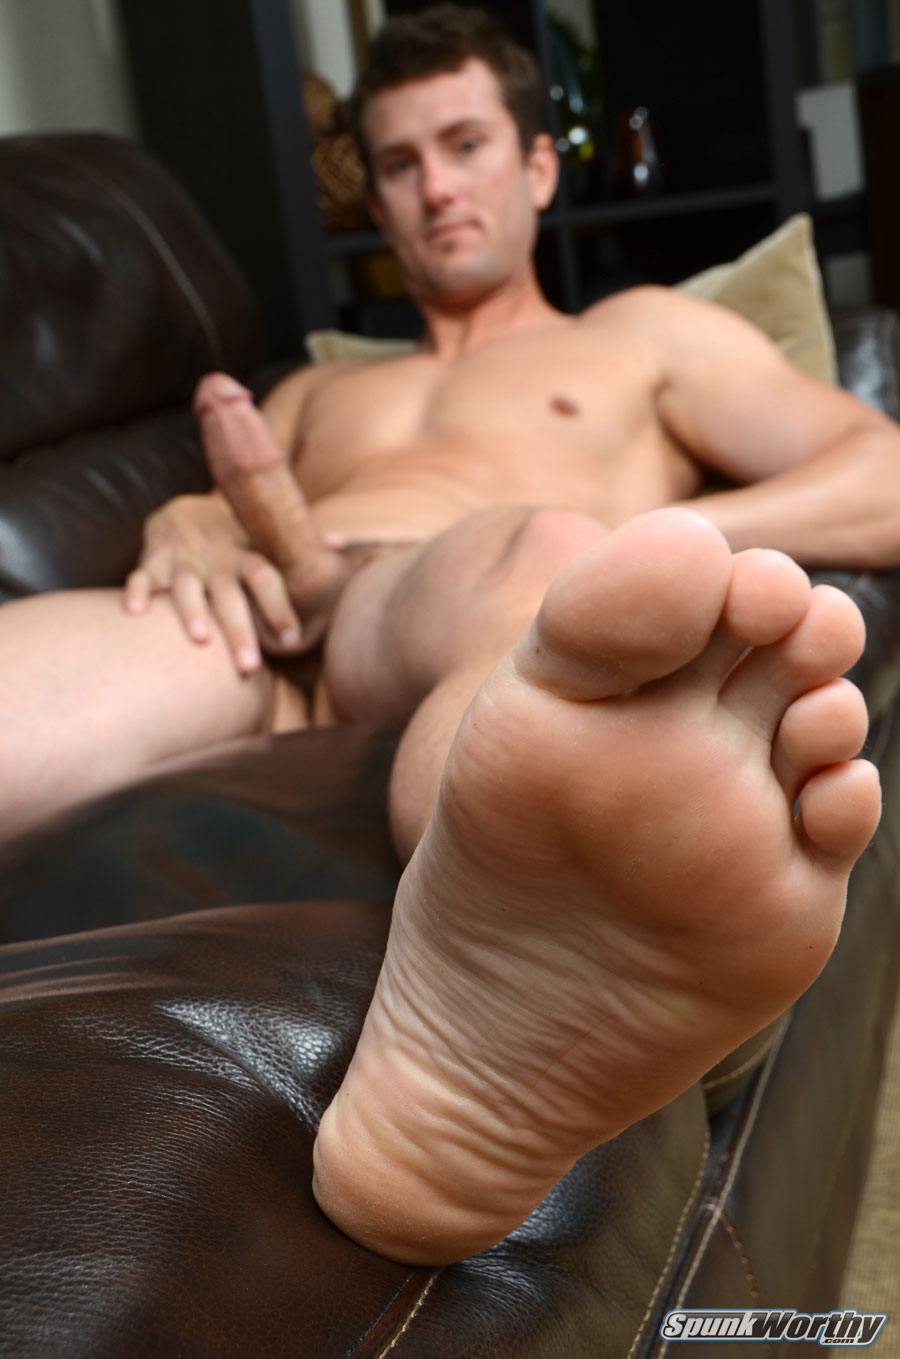 SpunkWorthy-Tommy-Straight-Guy-With-Big-Cock-Handjob-Amateur-Gay-Porn-13 Amateur Straight Surfer Gets His First Handjob From A Guy